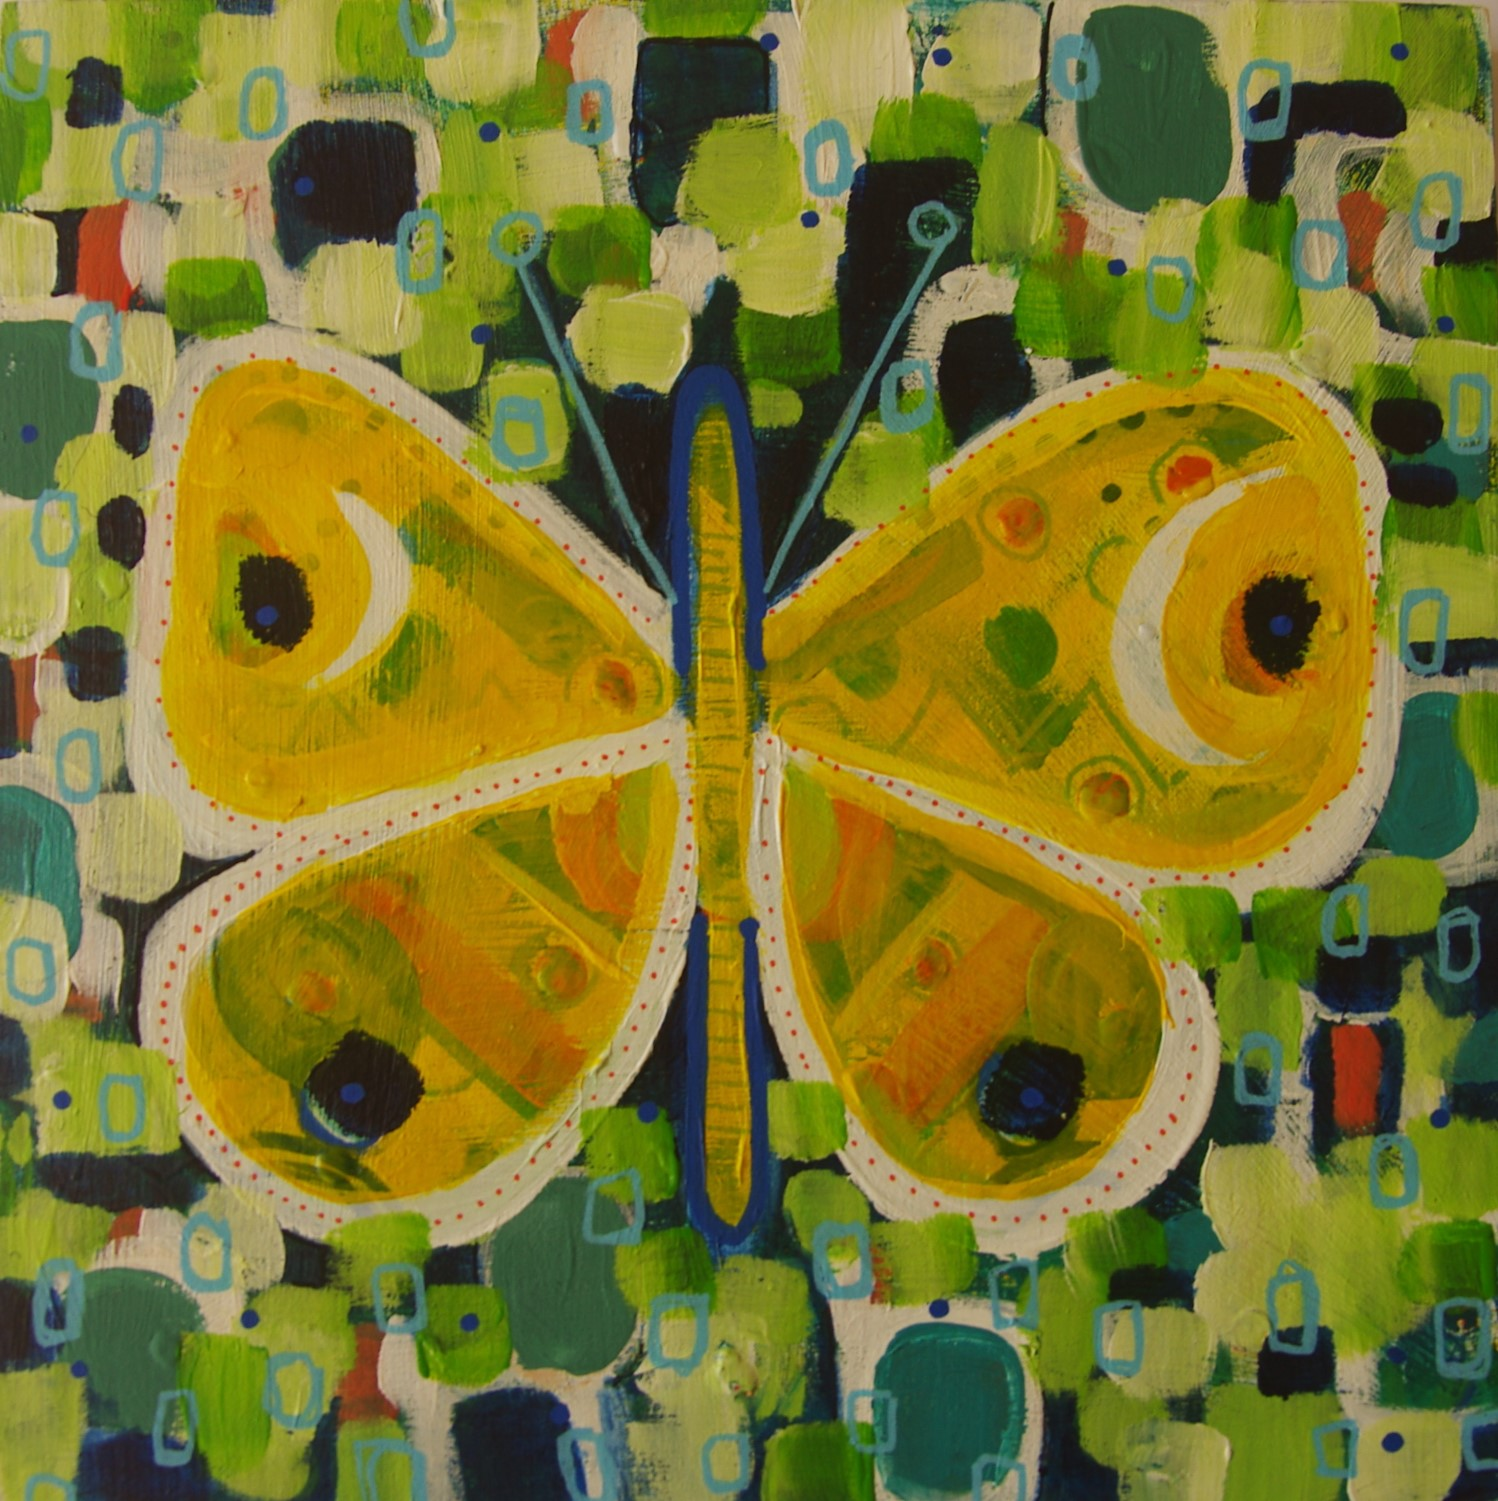 'Papillion' , is one of many small butterfly paintings I have been working on. After a visit to the Australian Musuem and spending time looking at the old 'butterfly' drawers and thoughts of colonial times and exploration, these butterflies are at the tip of my brush.